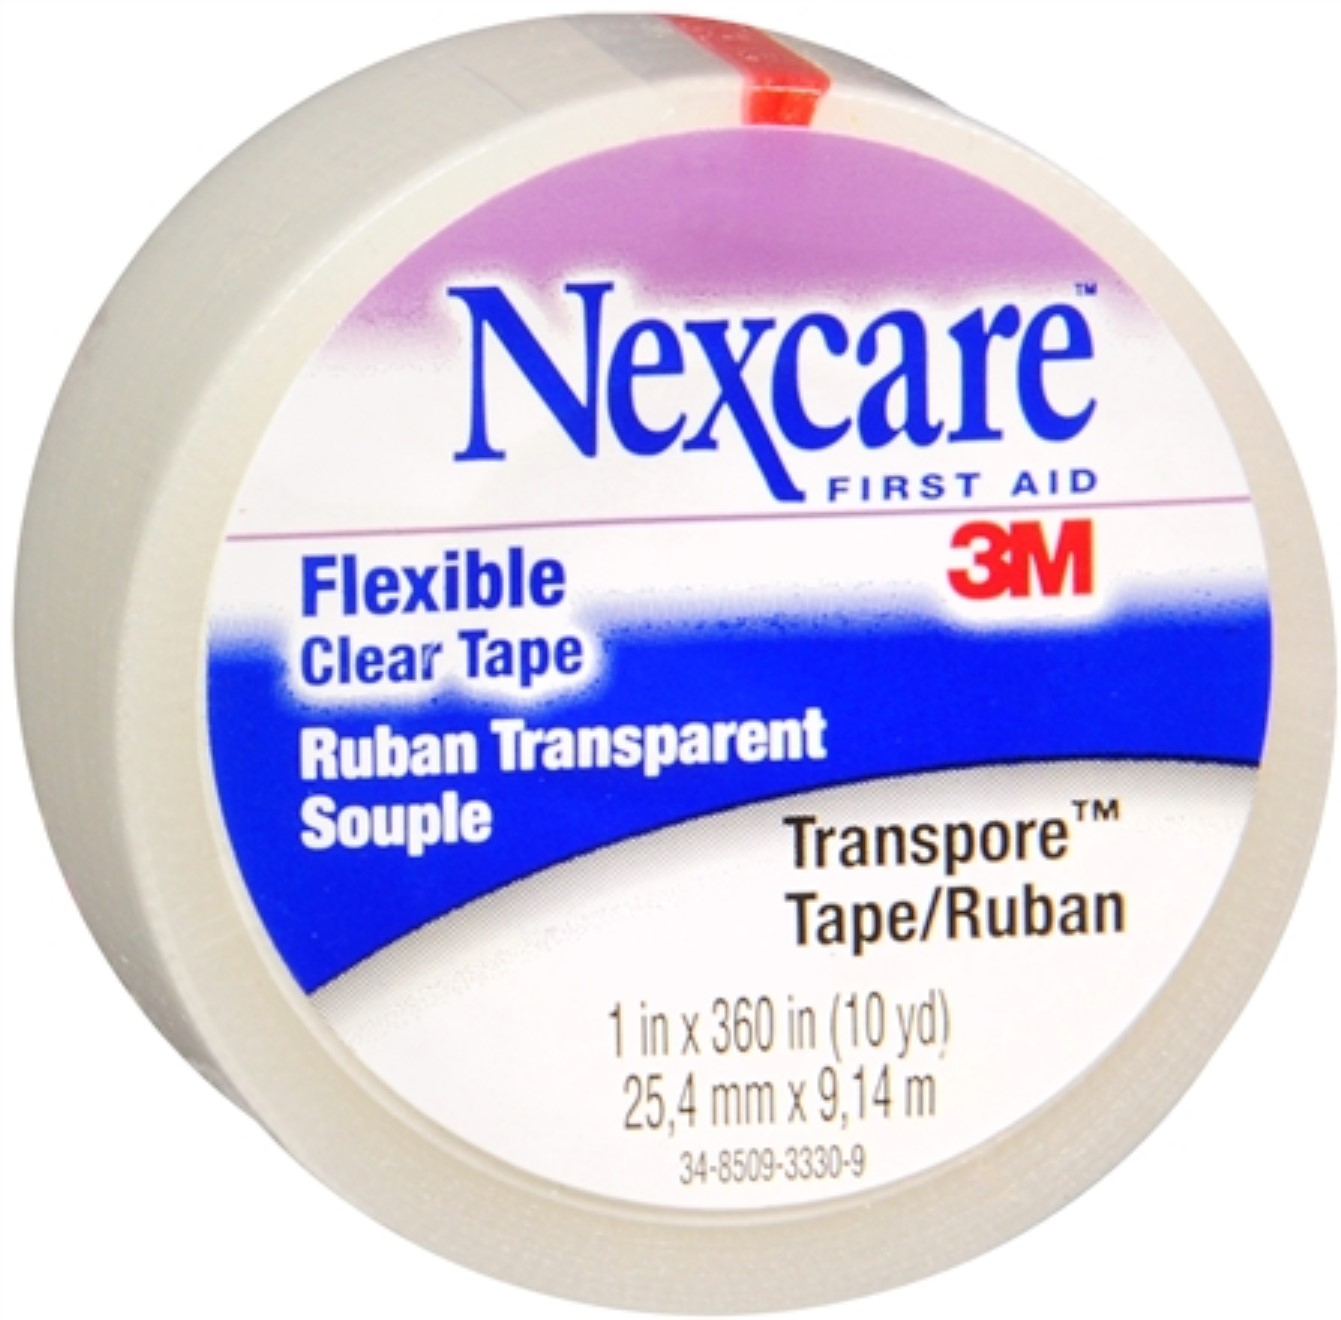 3M Nexcare First Aid Flexible Clear Tape, 1 ea